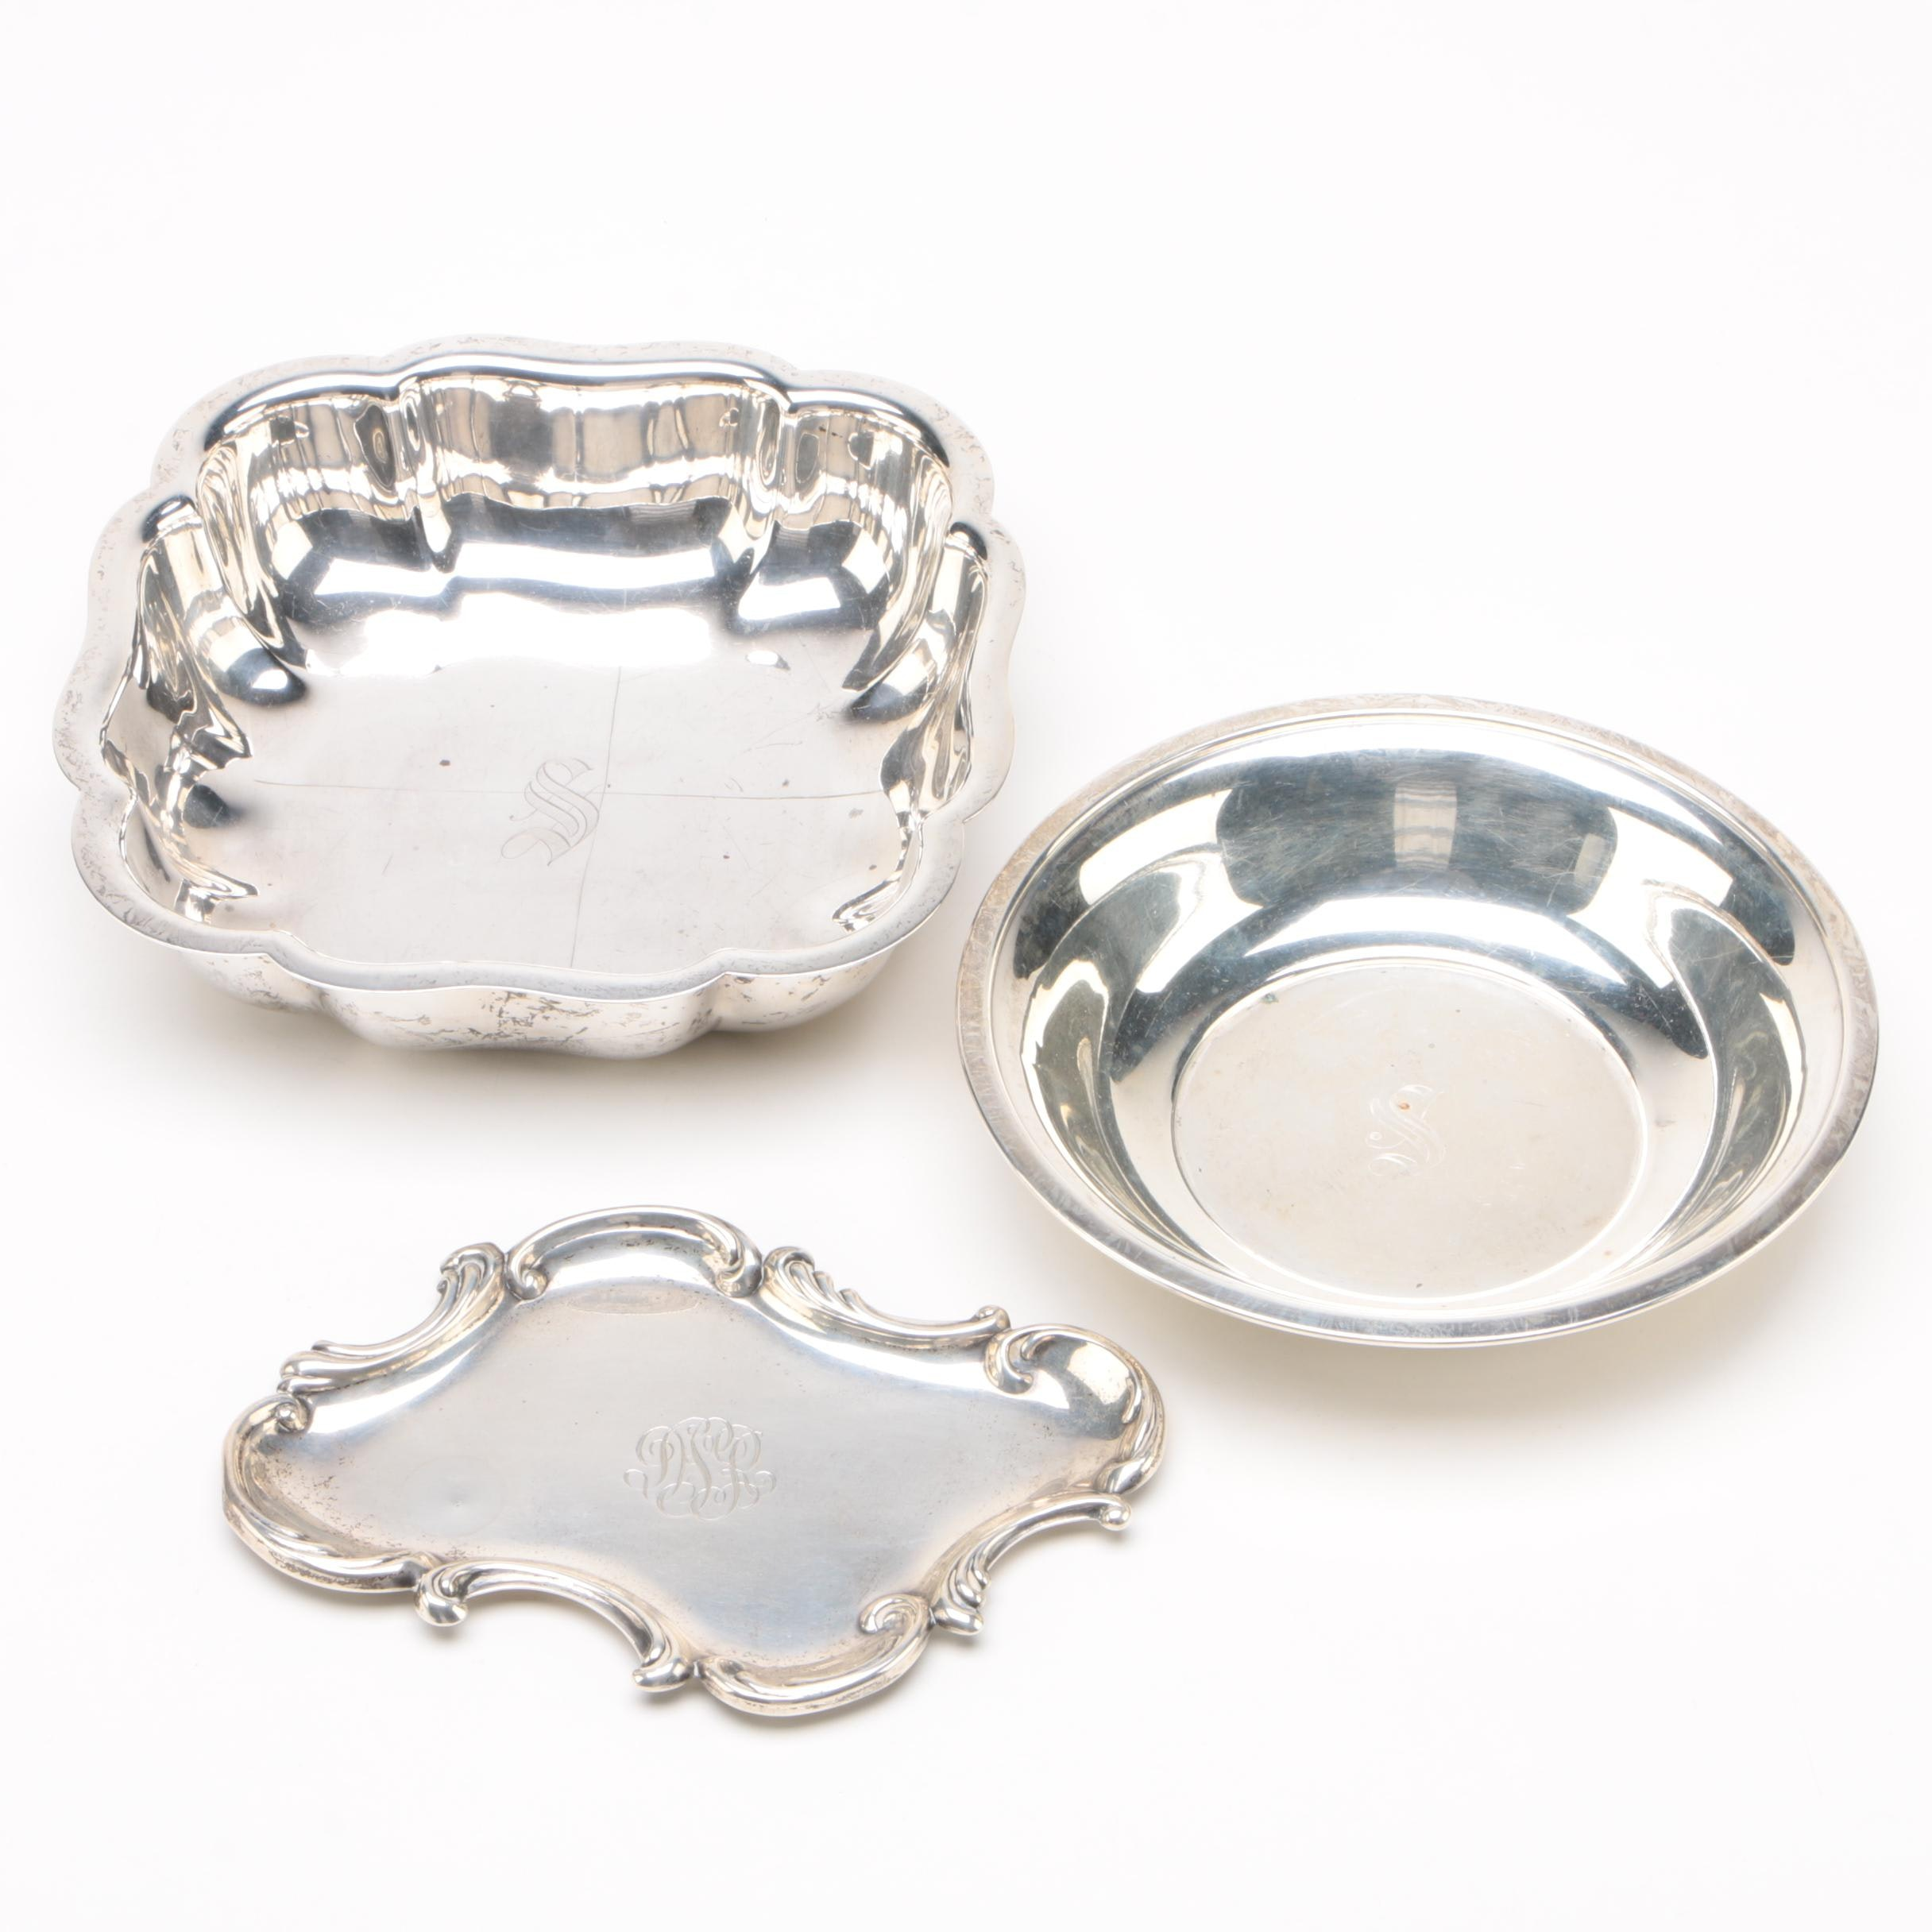 Sterling Silver Bowls and Small Vanity Tray